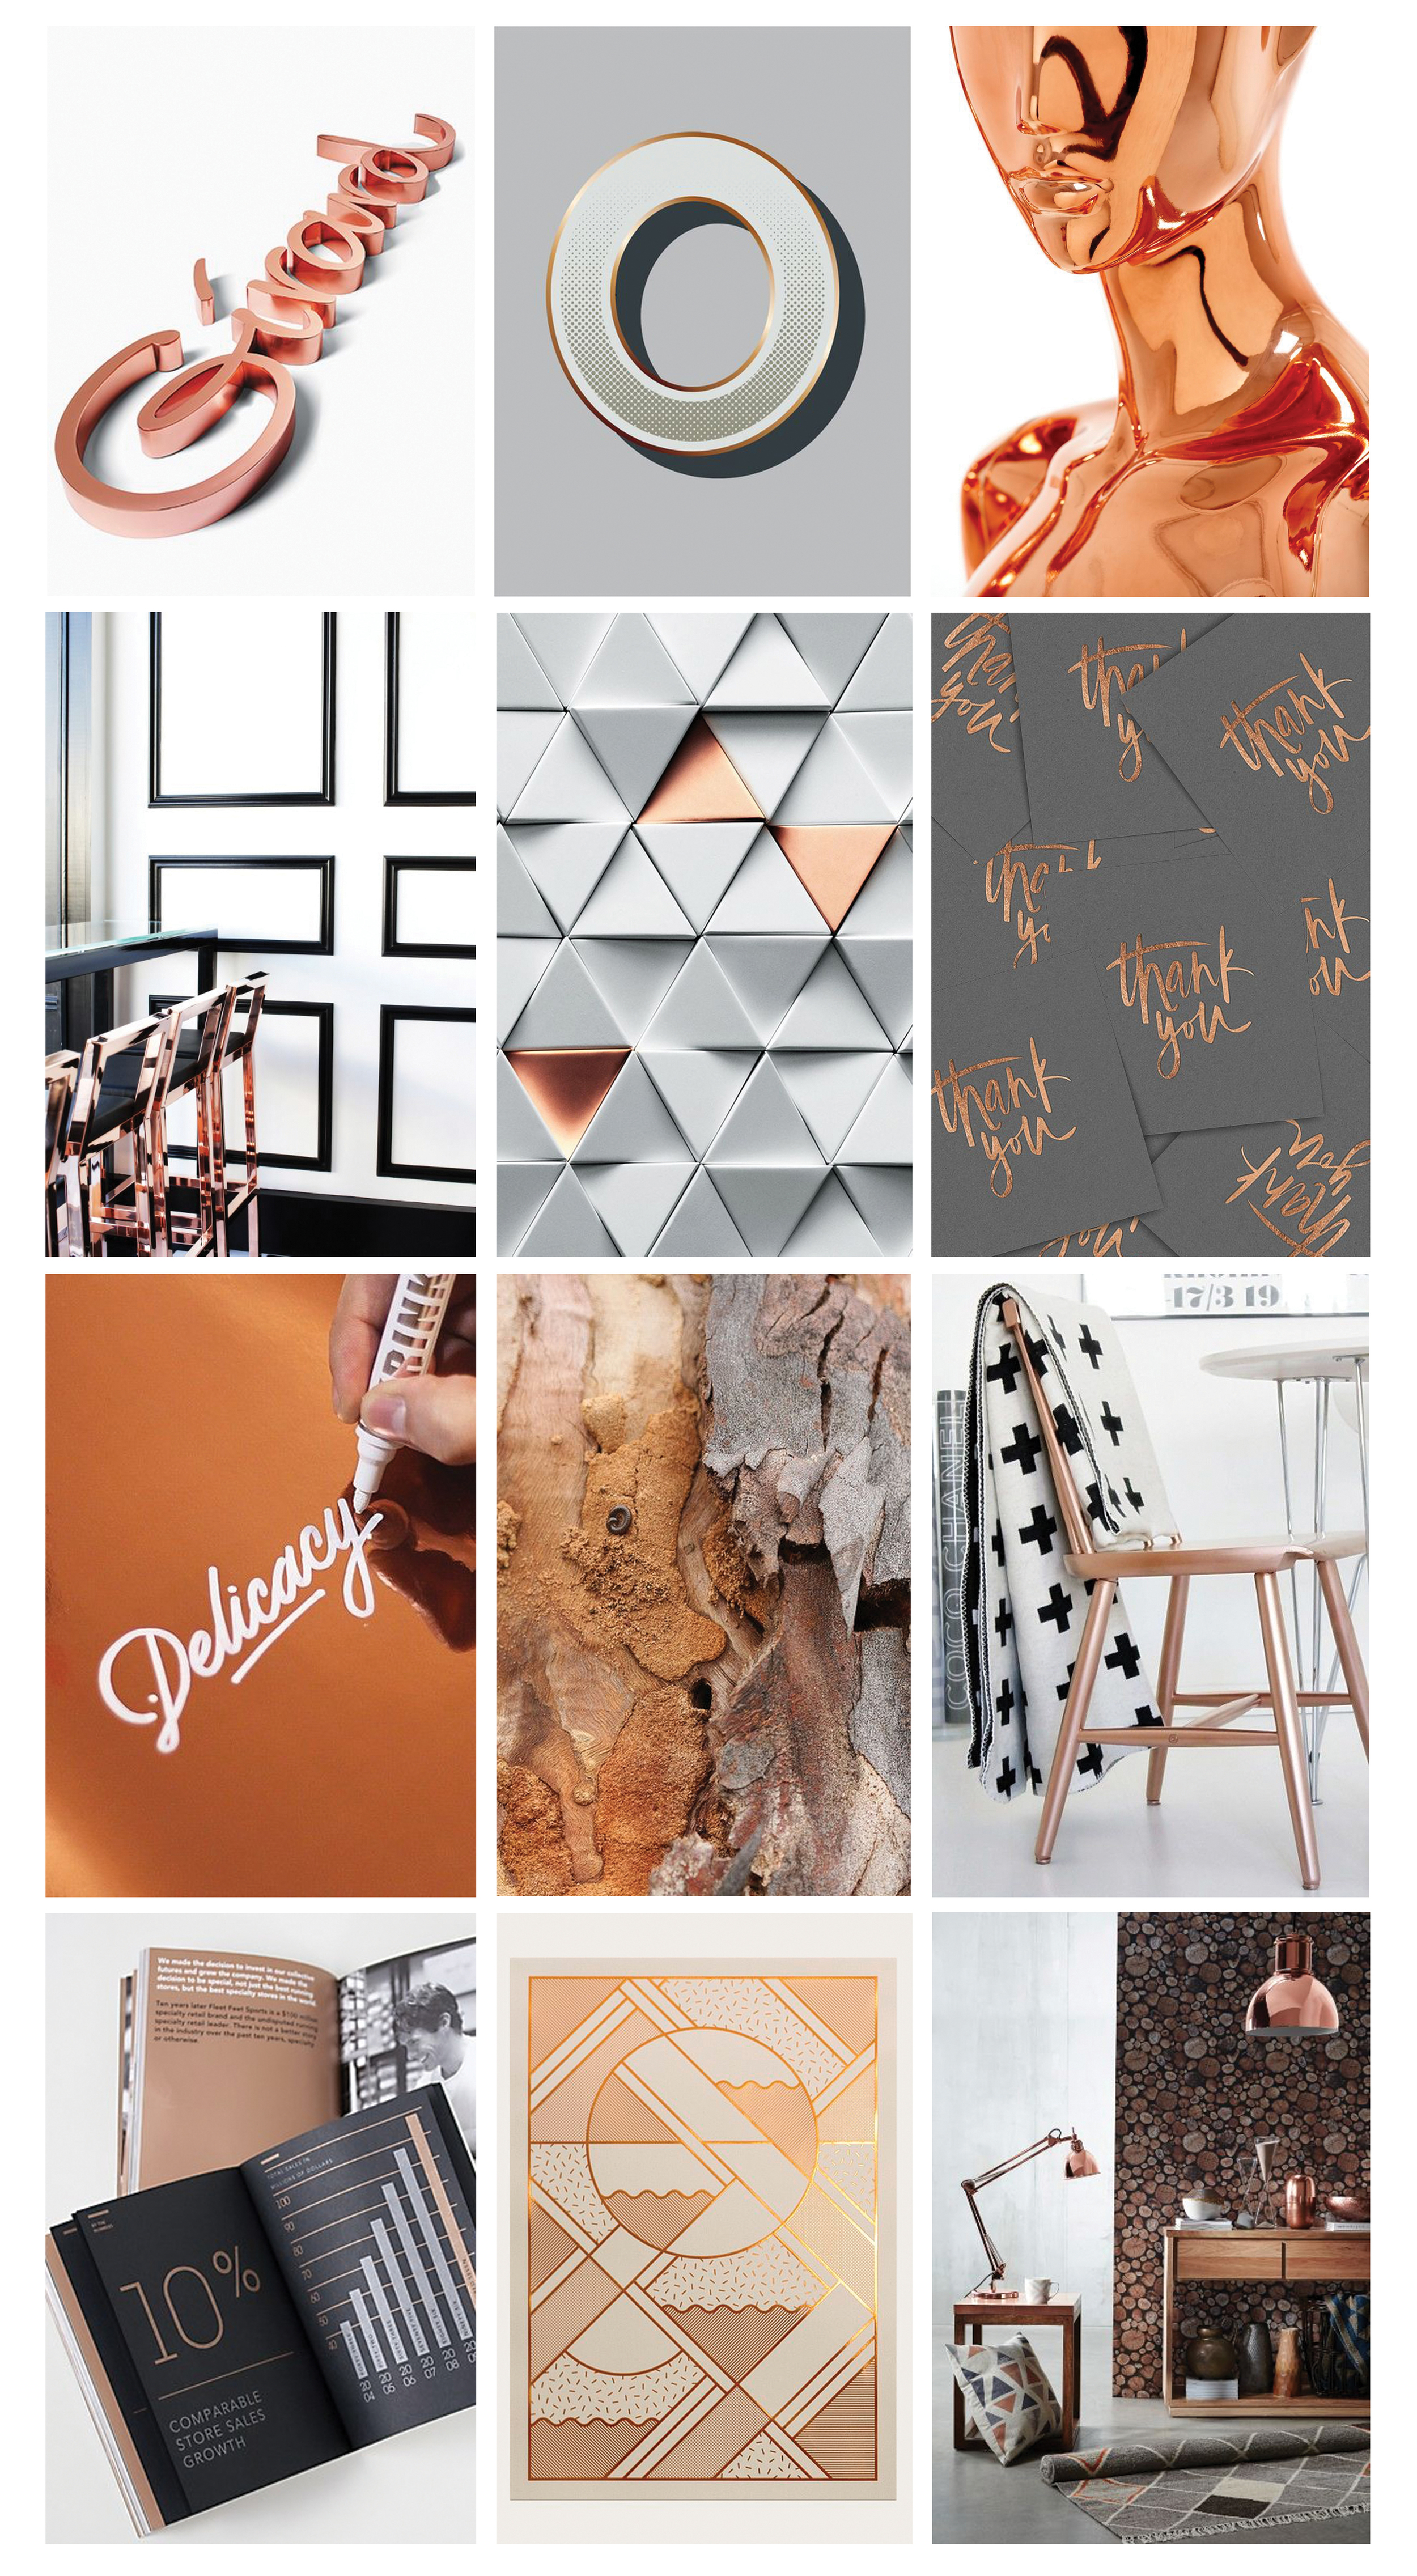 WEEKLY INSPIRATION WITH MONDAY MOOD BOARD 47 | THE PAPER CURATOR